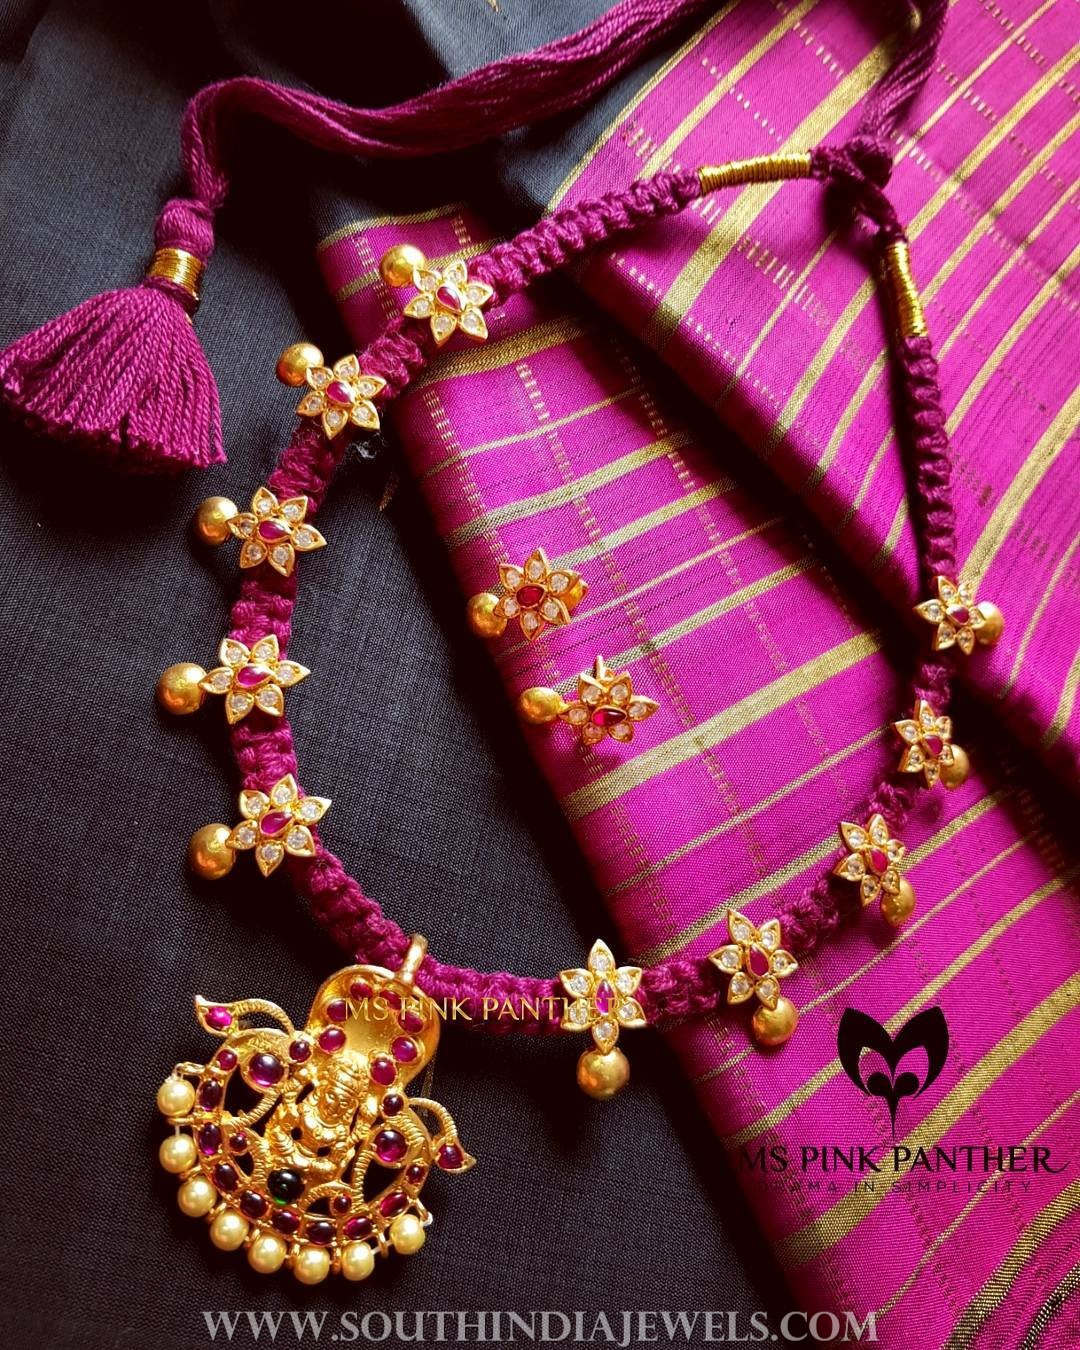 Ruby Thread Necklace From Ms Pink Panther